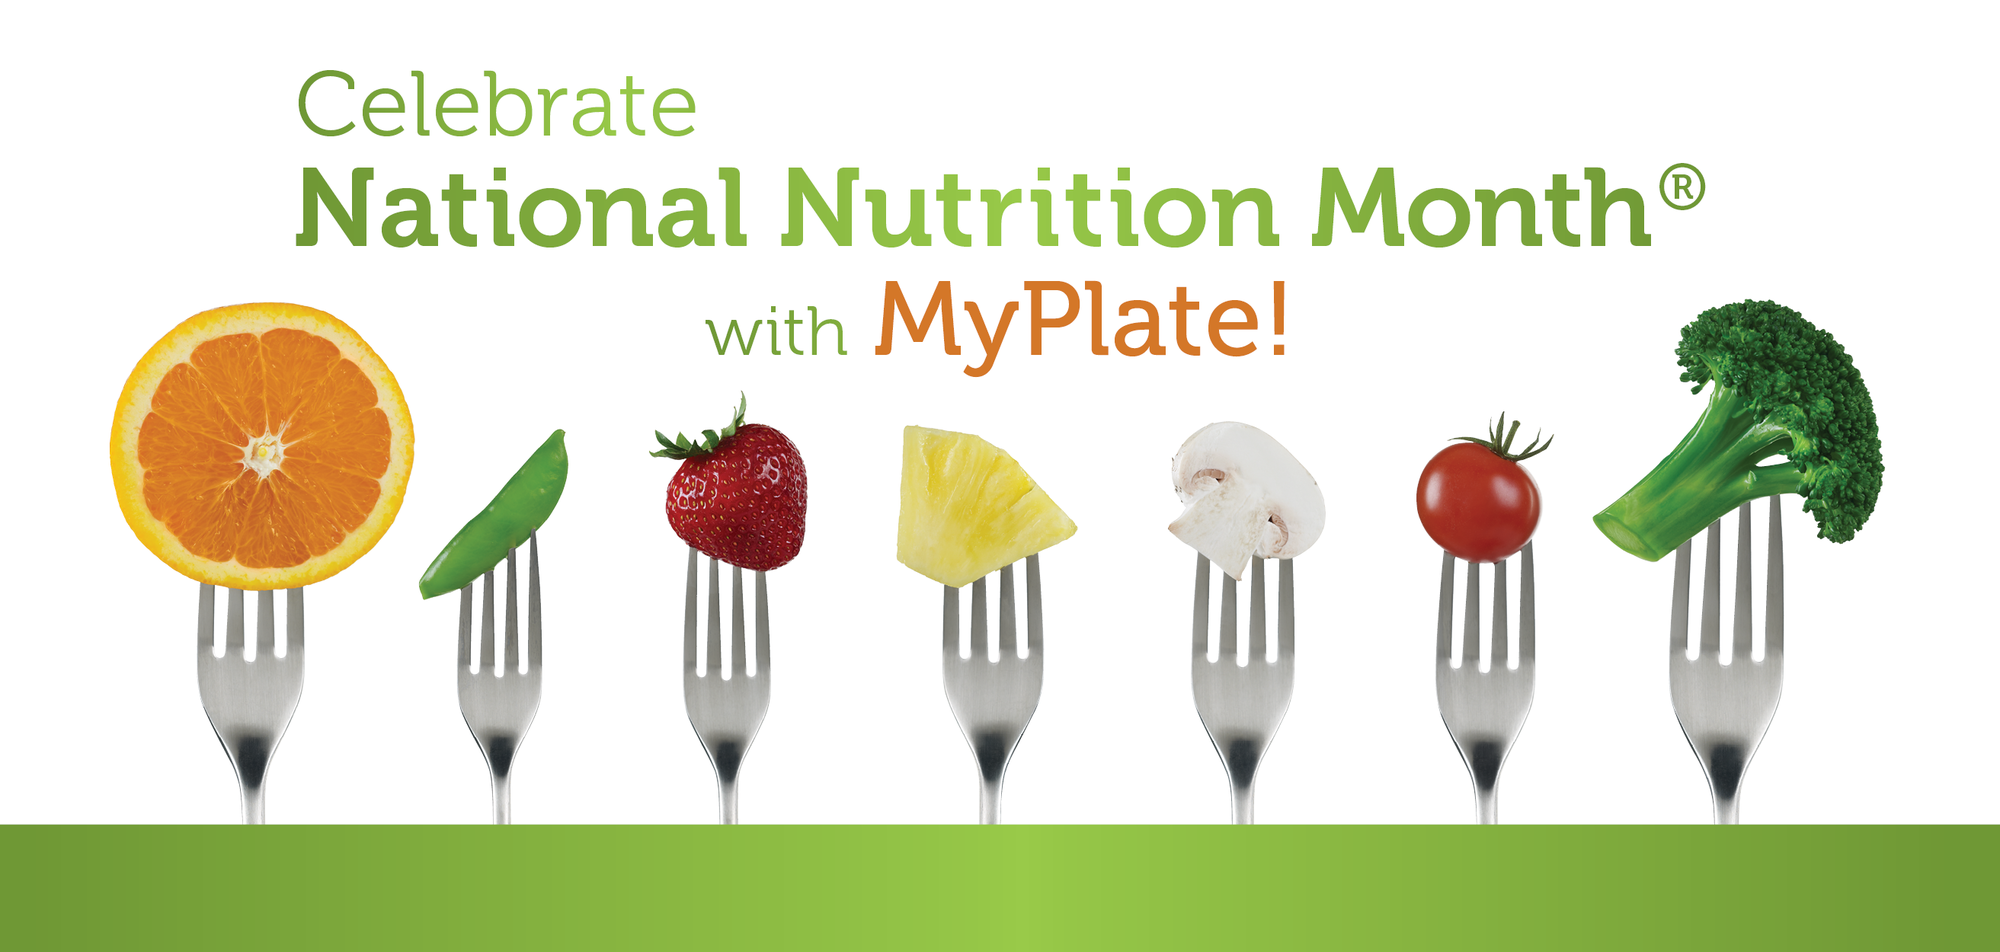 Celebrate National Nutrition Month With Myplate